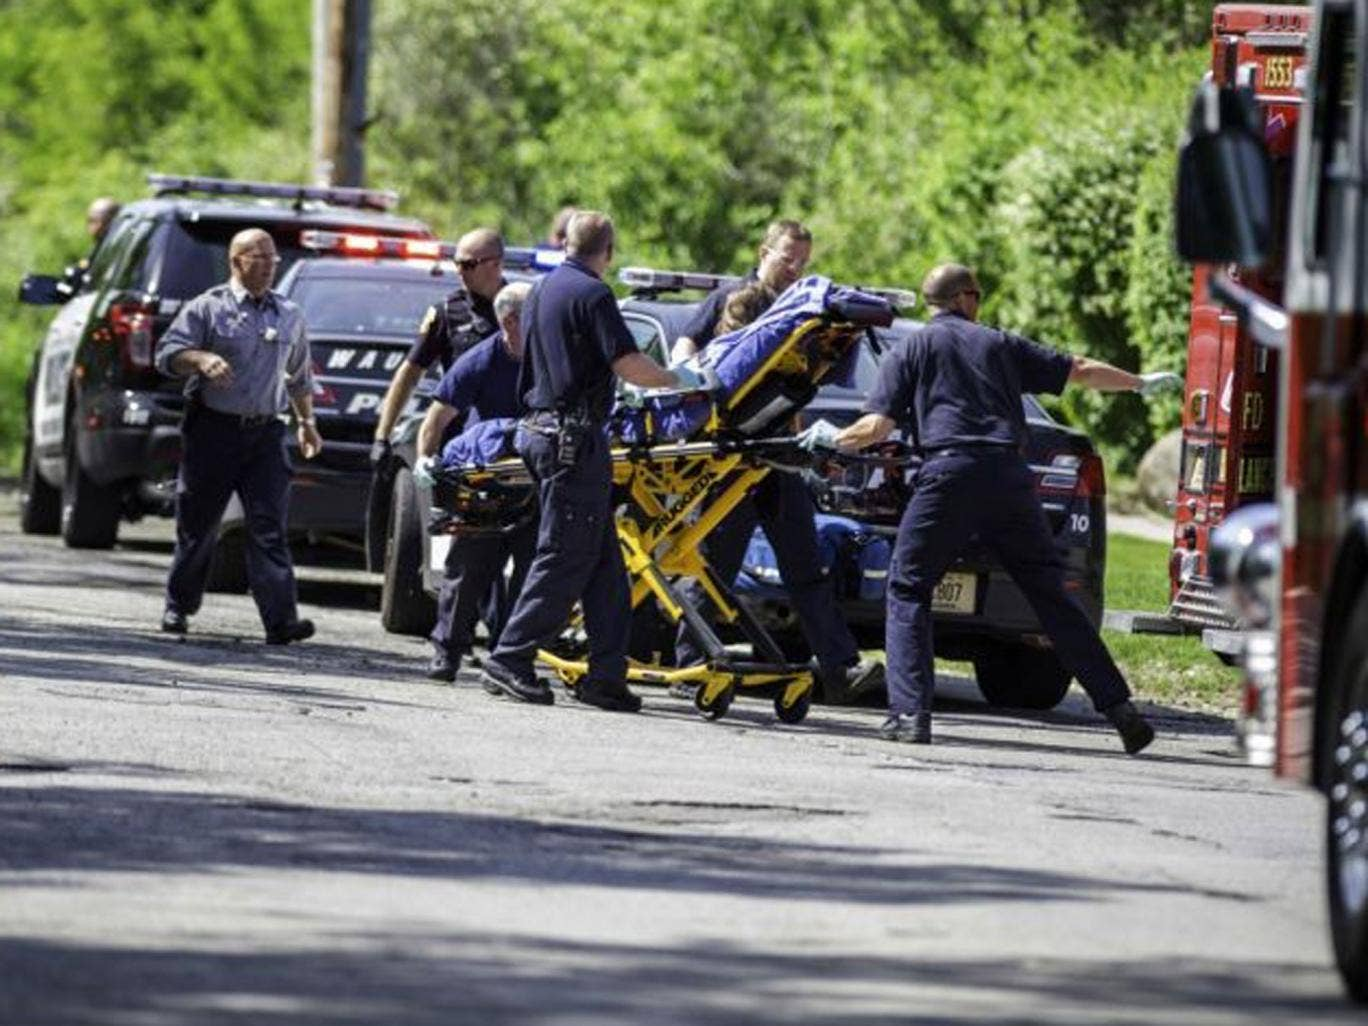 Rescue workers take a stabbing victim to the ambulance in Waukesha, Wis. Prosecutors say two 12-year-old southeastern Wisconsin girls stabbed their 12-year-old friend nearly to death in the woods to please a mythological creature they learned about online